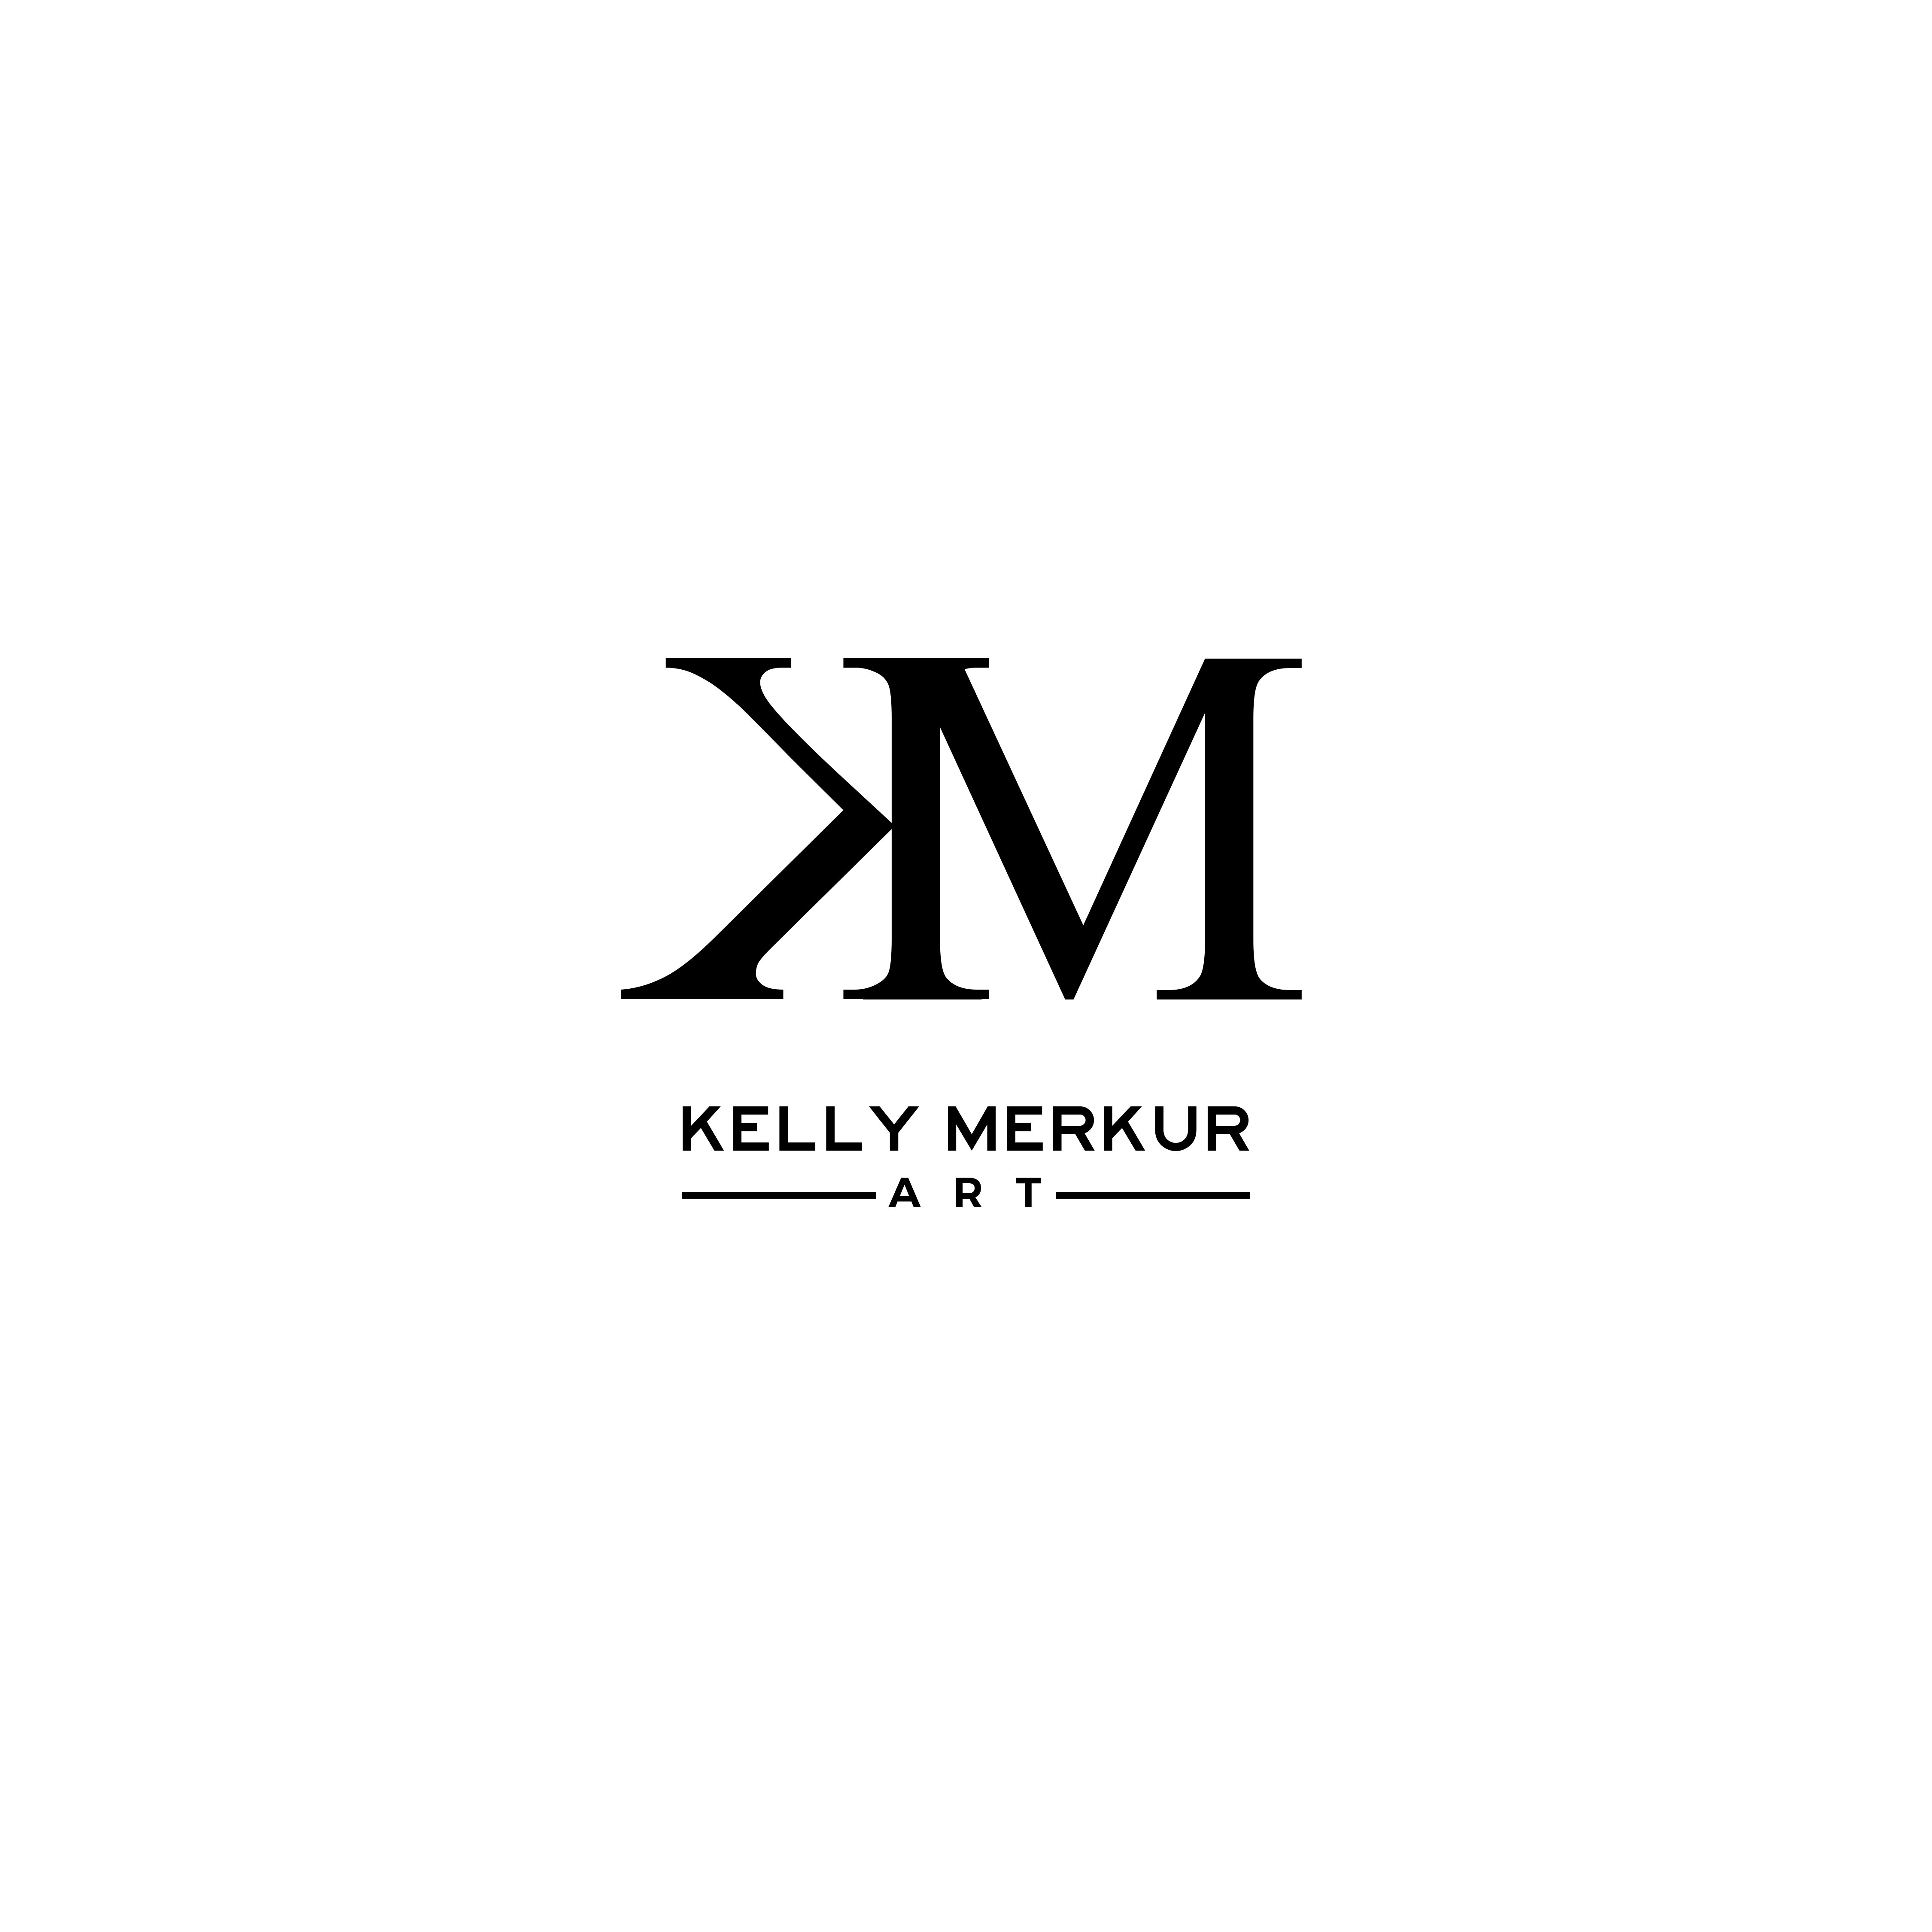 Kelly Merkur Art